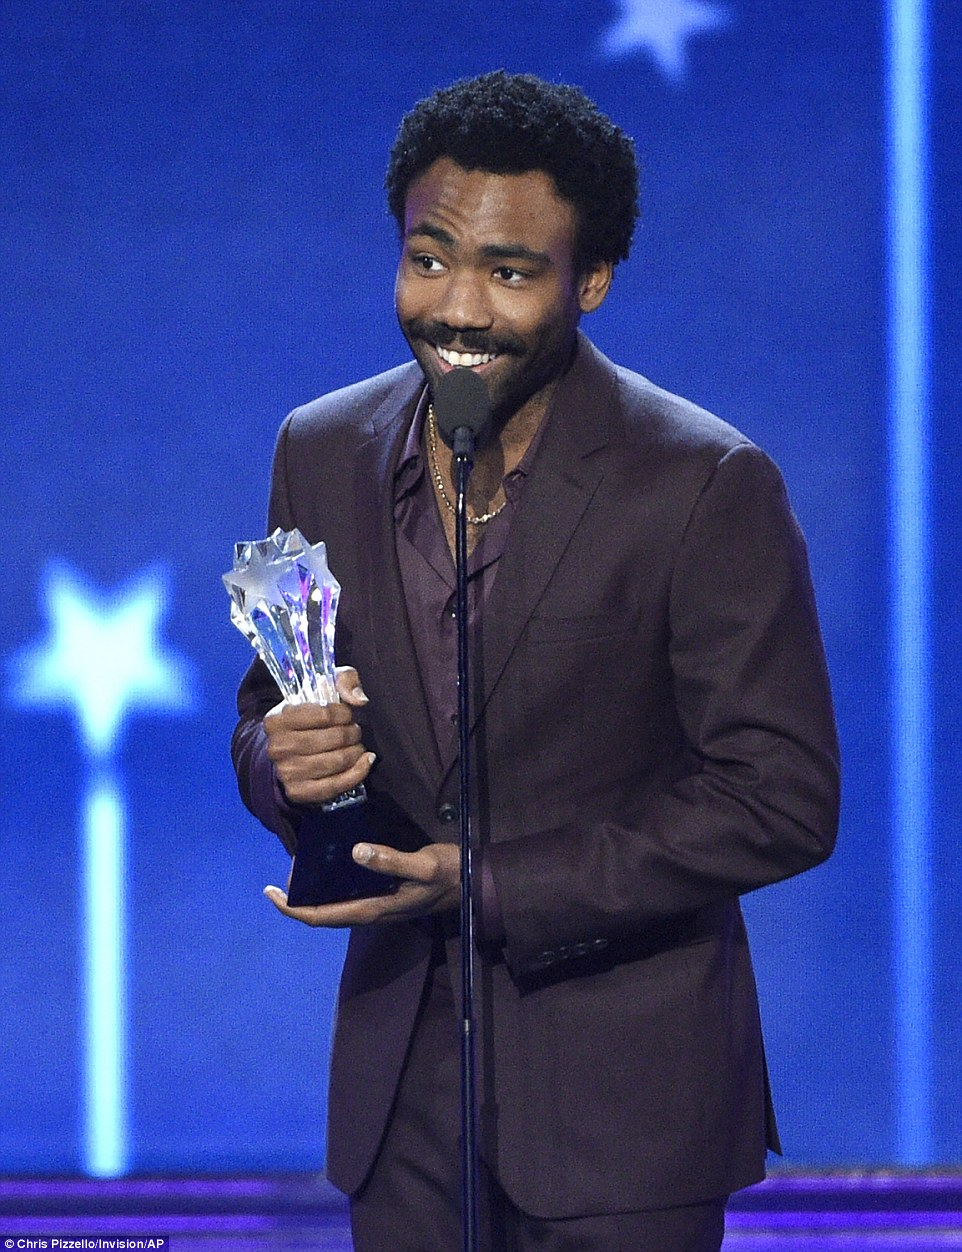 Honored: The 33-year-old actor accepted the gong for Best Actor in a Comedy Series as he said: 'Thank you guys so much I really was not expecting this because the category had so many actors I admire'